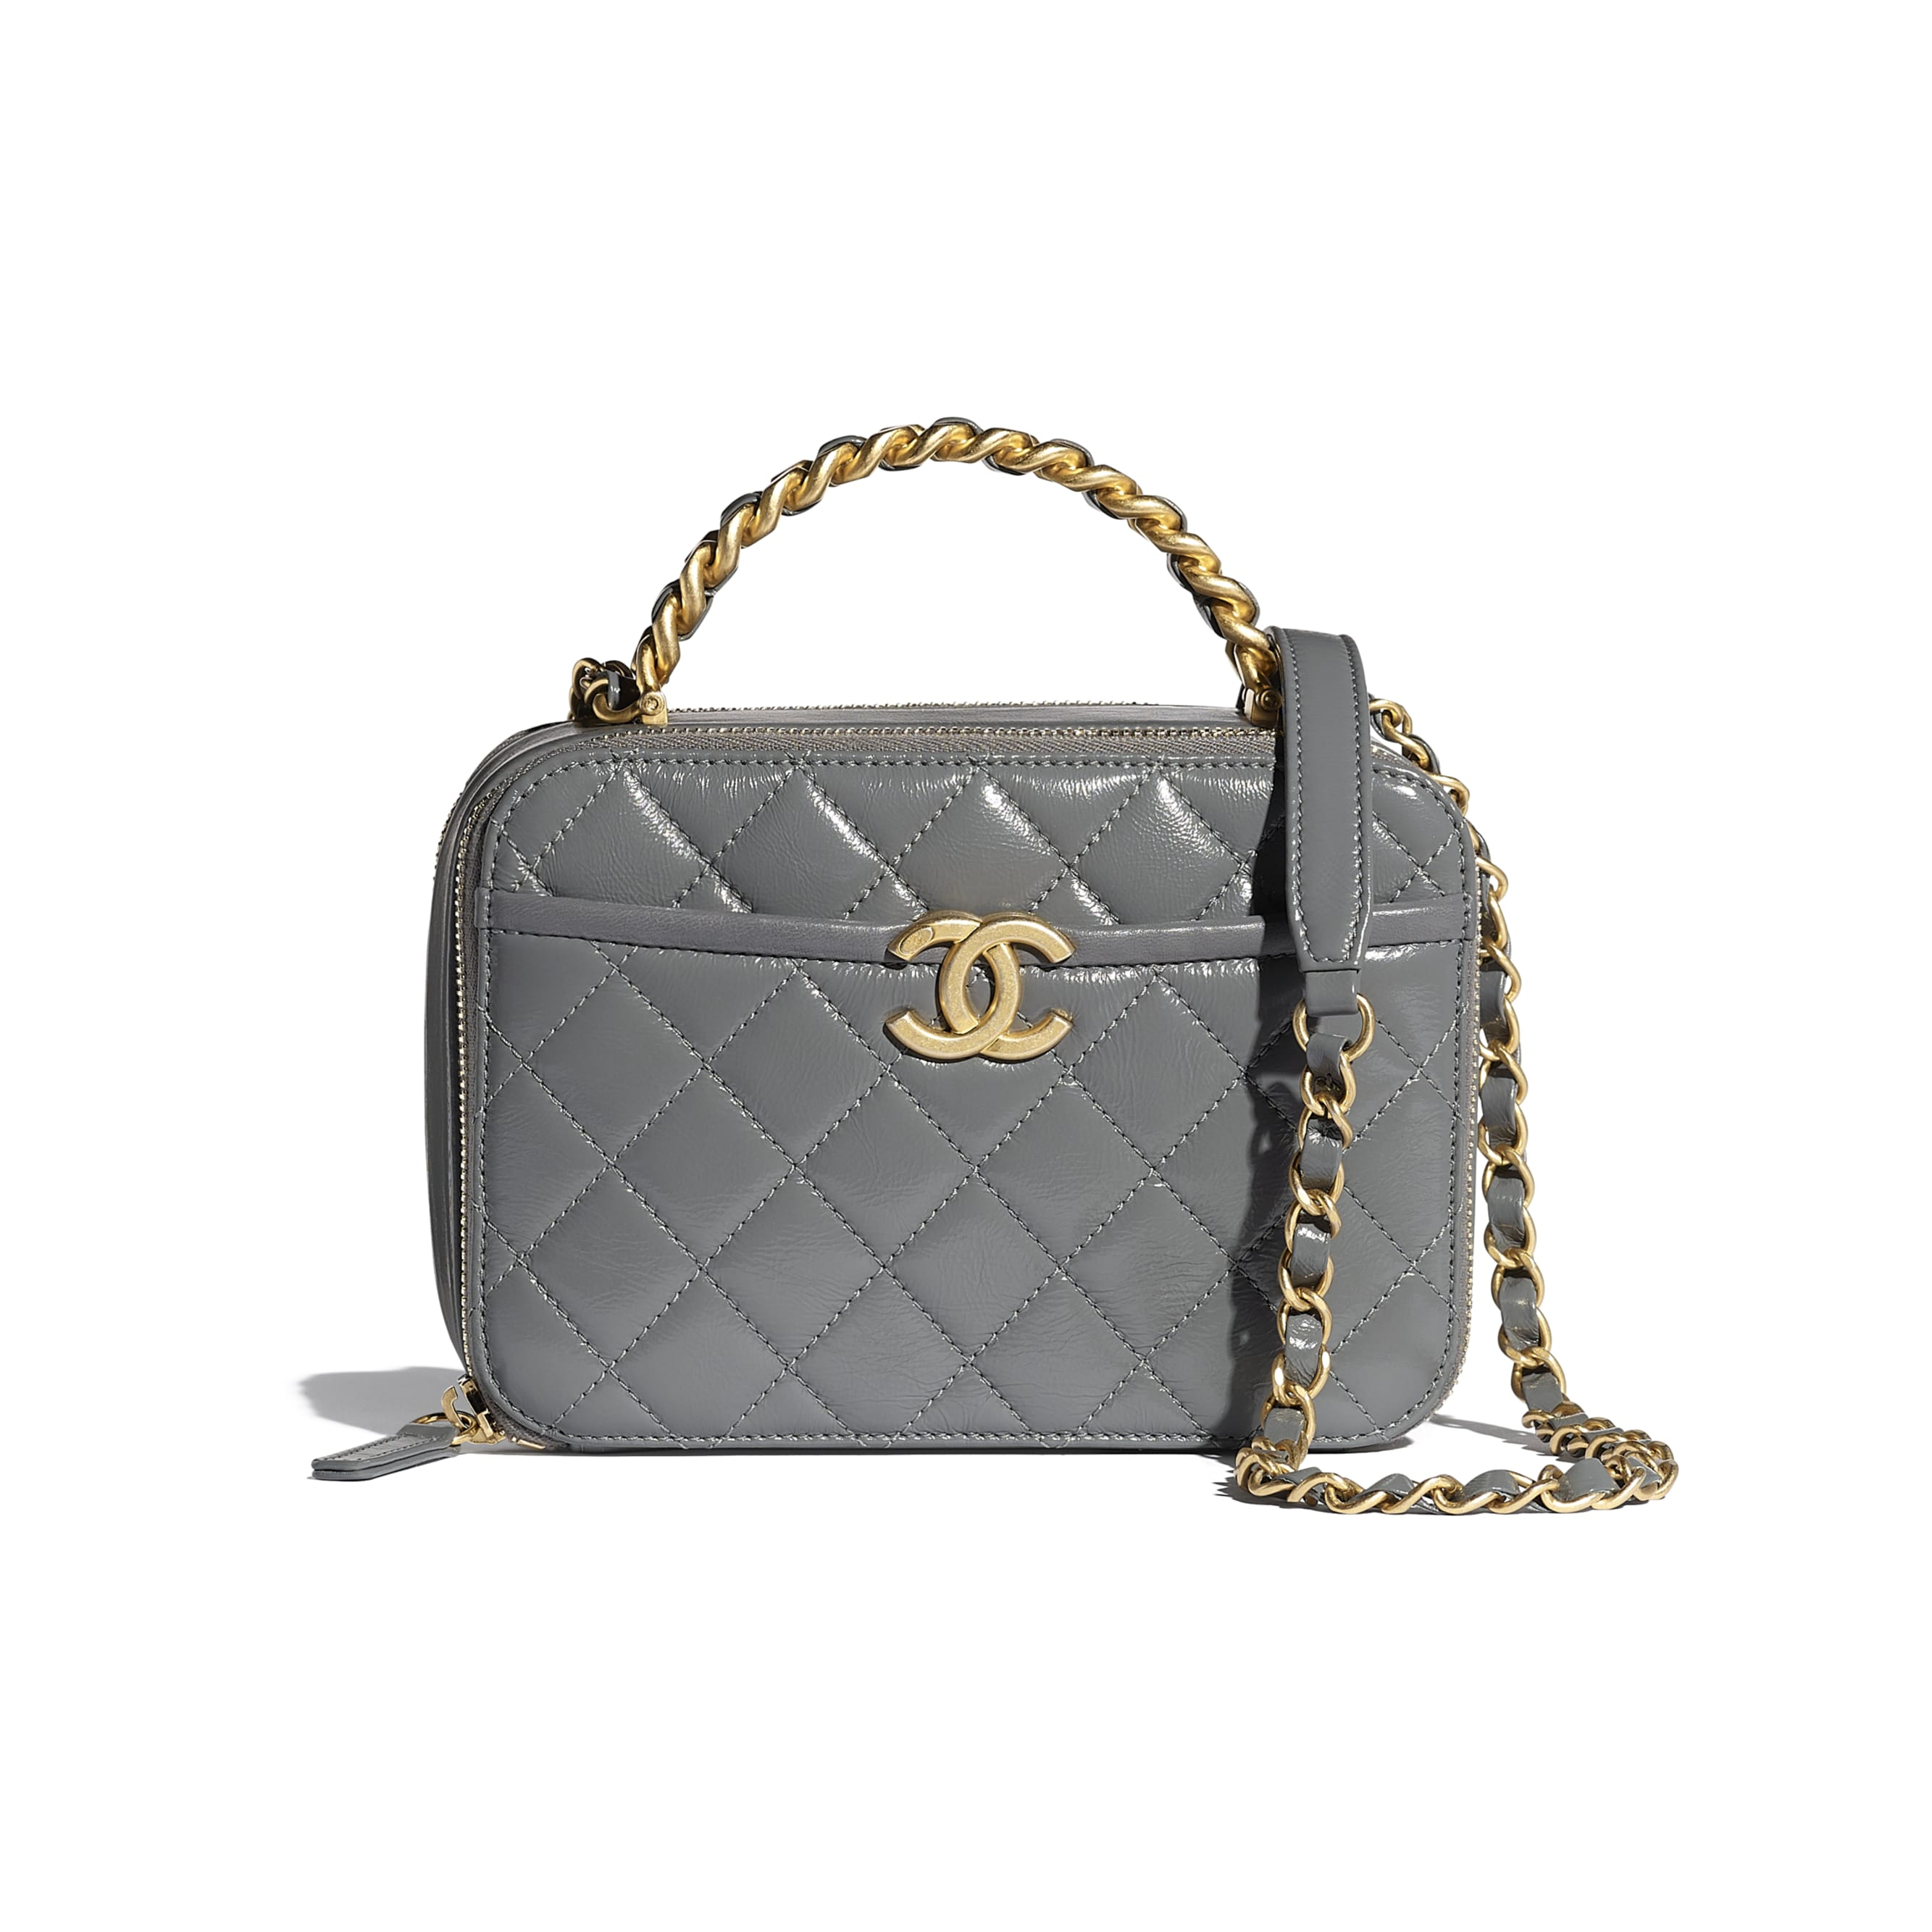 Vanity Case - Grey - Lambskin, Shiny Crumpled Calfskin & Gold-Tone Metal - CHANEL - Default view - see standard sized version